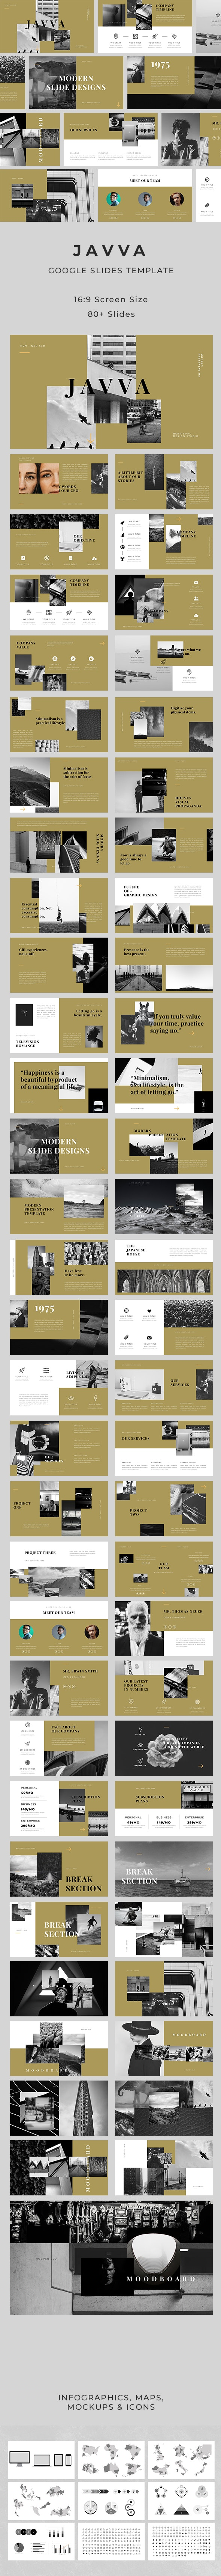 Javva Google Slides Template - Google Slides Presentation Templates